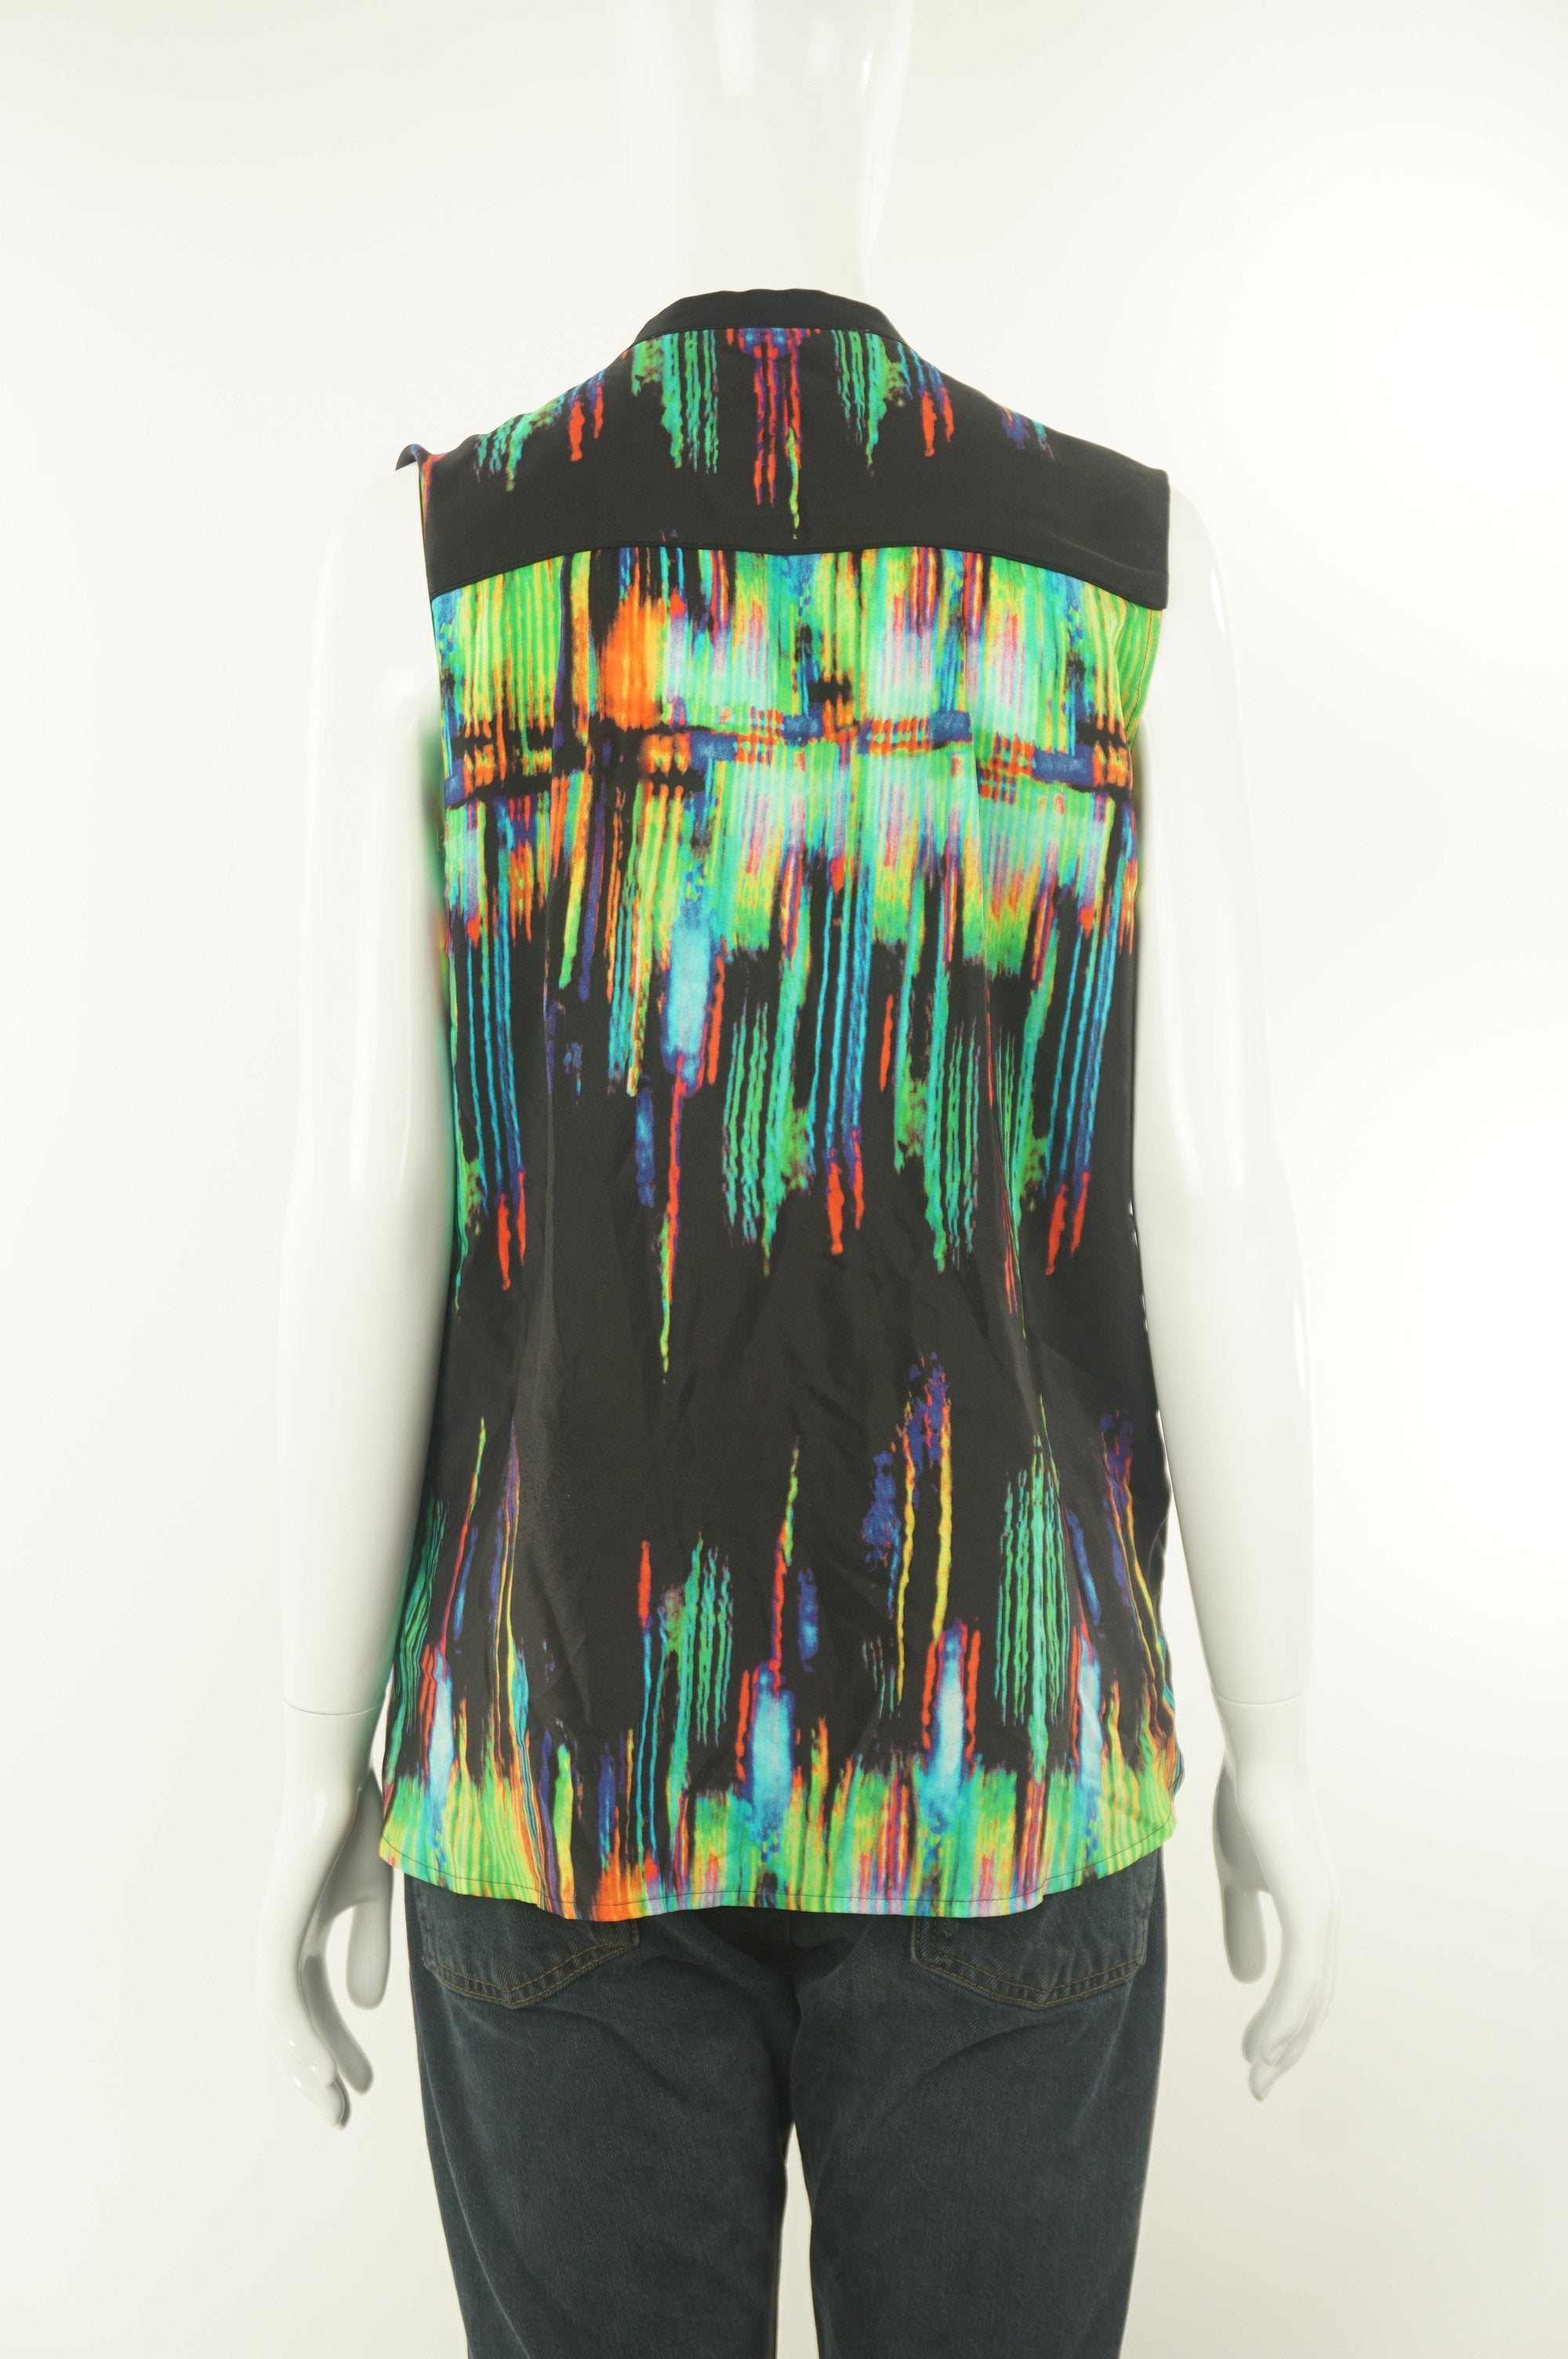 Belair Multi-colored Sleeveless Collar Shirt, Be loud yet simplistic with this unique multi-colored sleeveless collar shirt. , 0, Smooth and lightweight fabric,